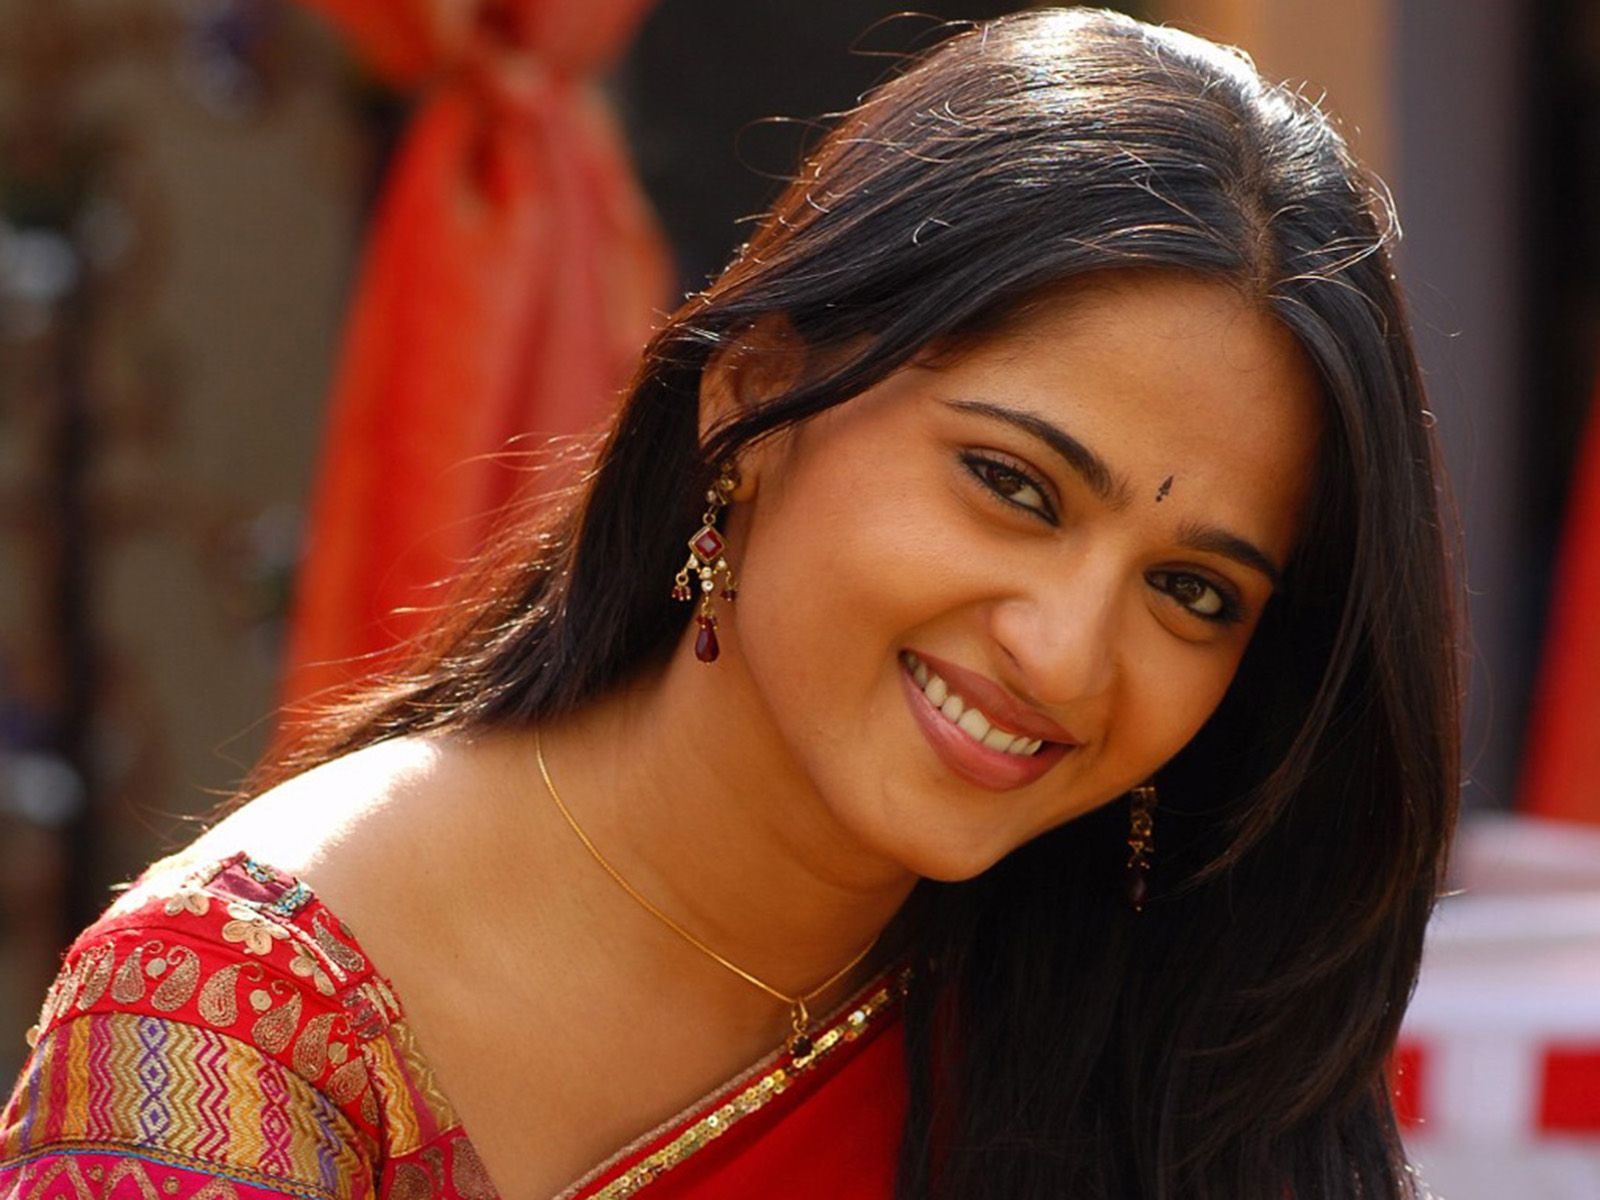 South Indian Actress Hd Wallpapers Free Download On Share Online